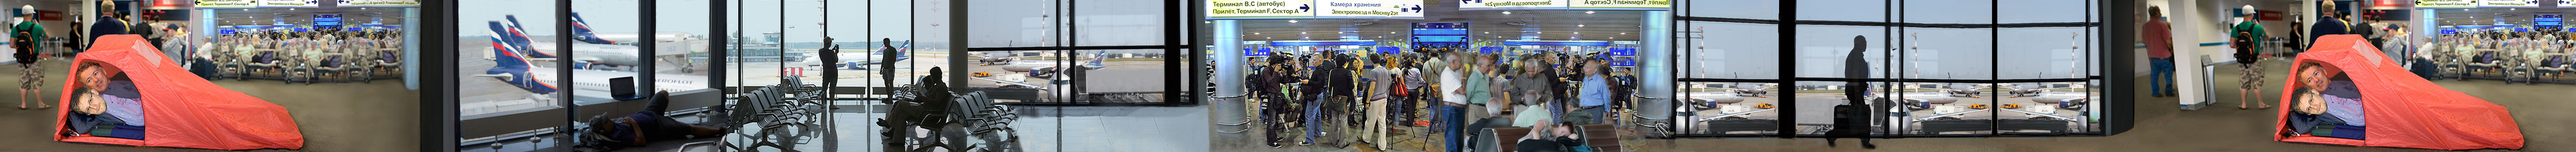 Snowden Still Stranded In Moscow Airport After Six Weeks.